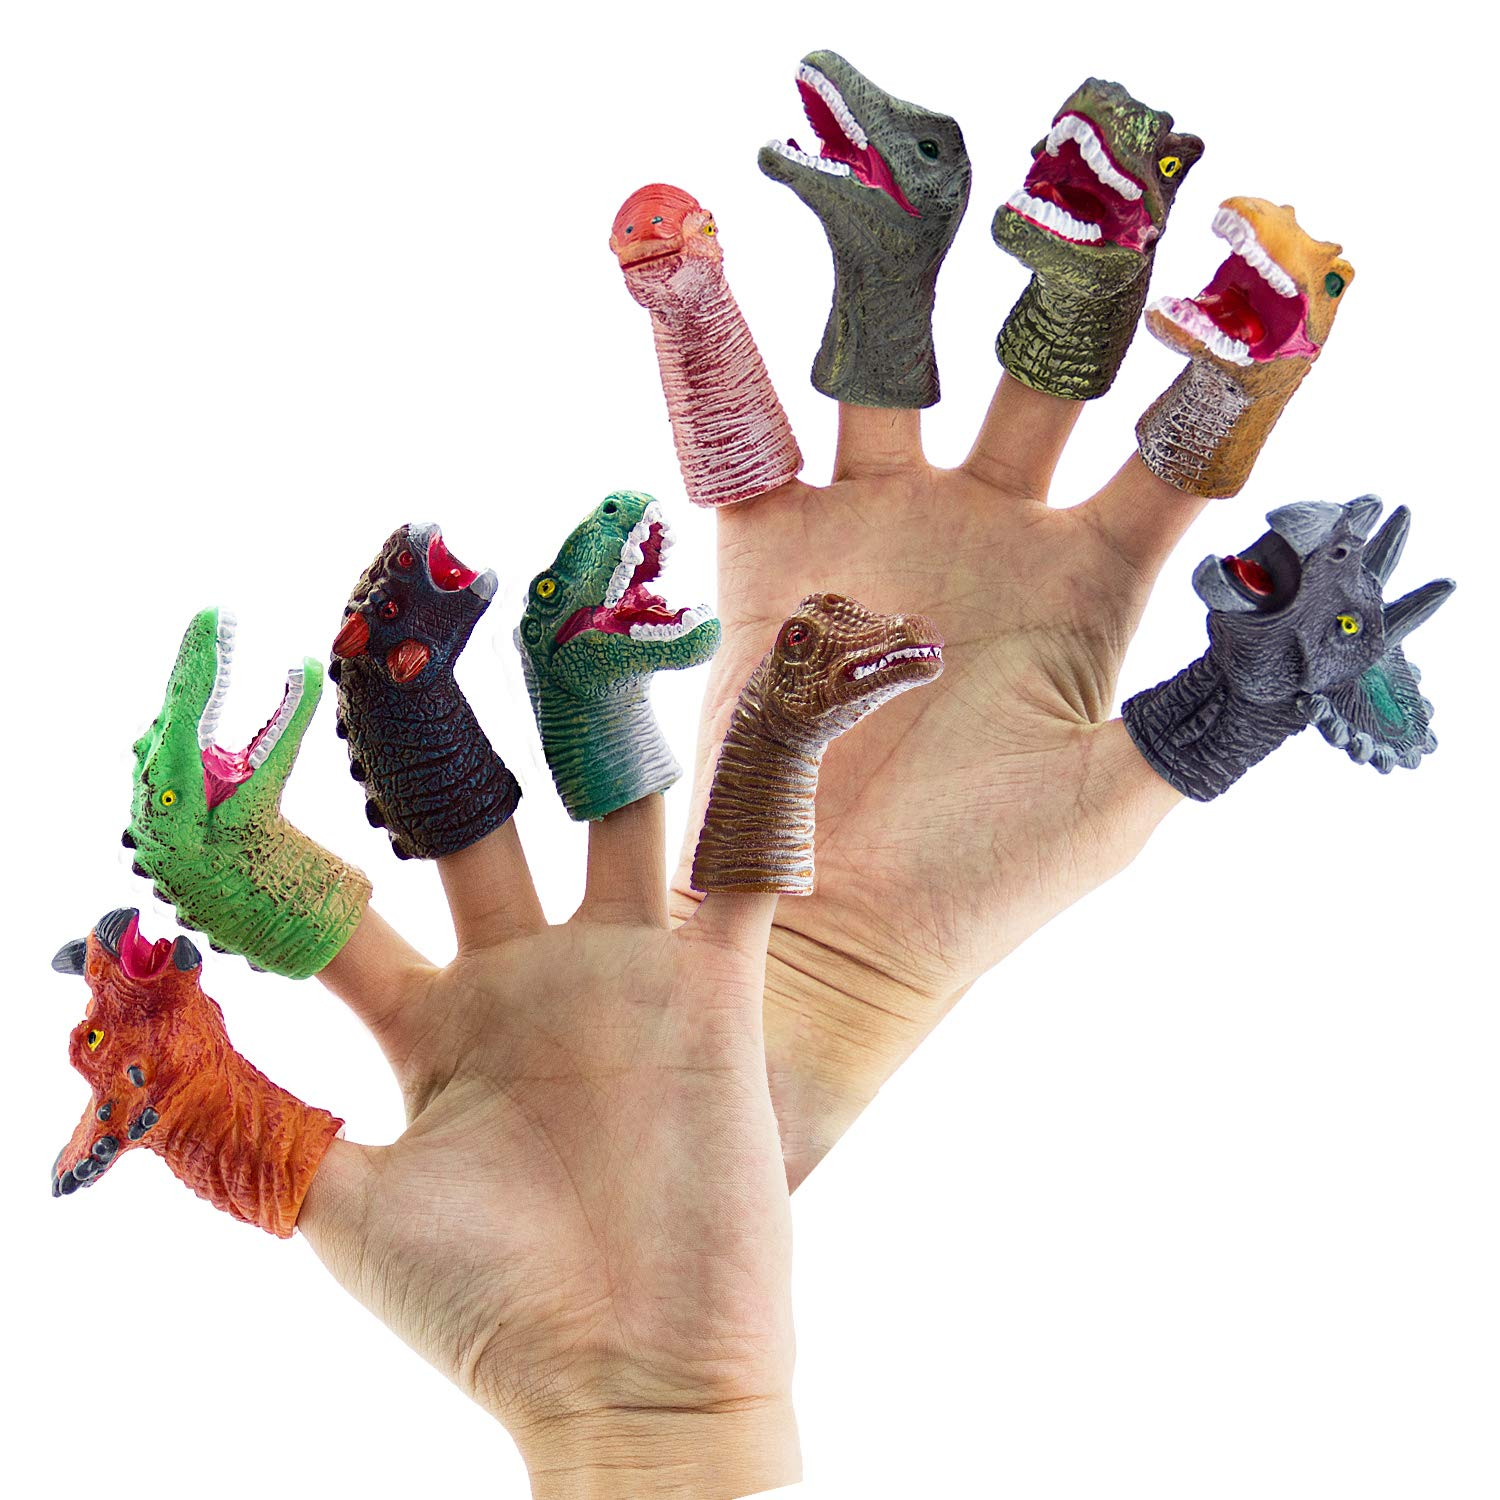 LITTLE SIENA 10pcs Realistic Dinosaur Finger Puppets Role Playing Toys Party Supplies Birthday Gift for Kids and Adults Great Party Favors